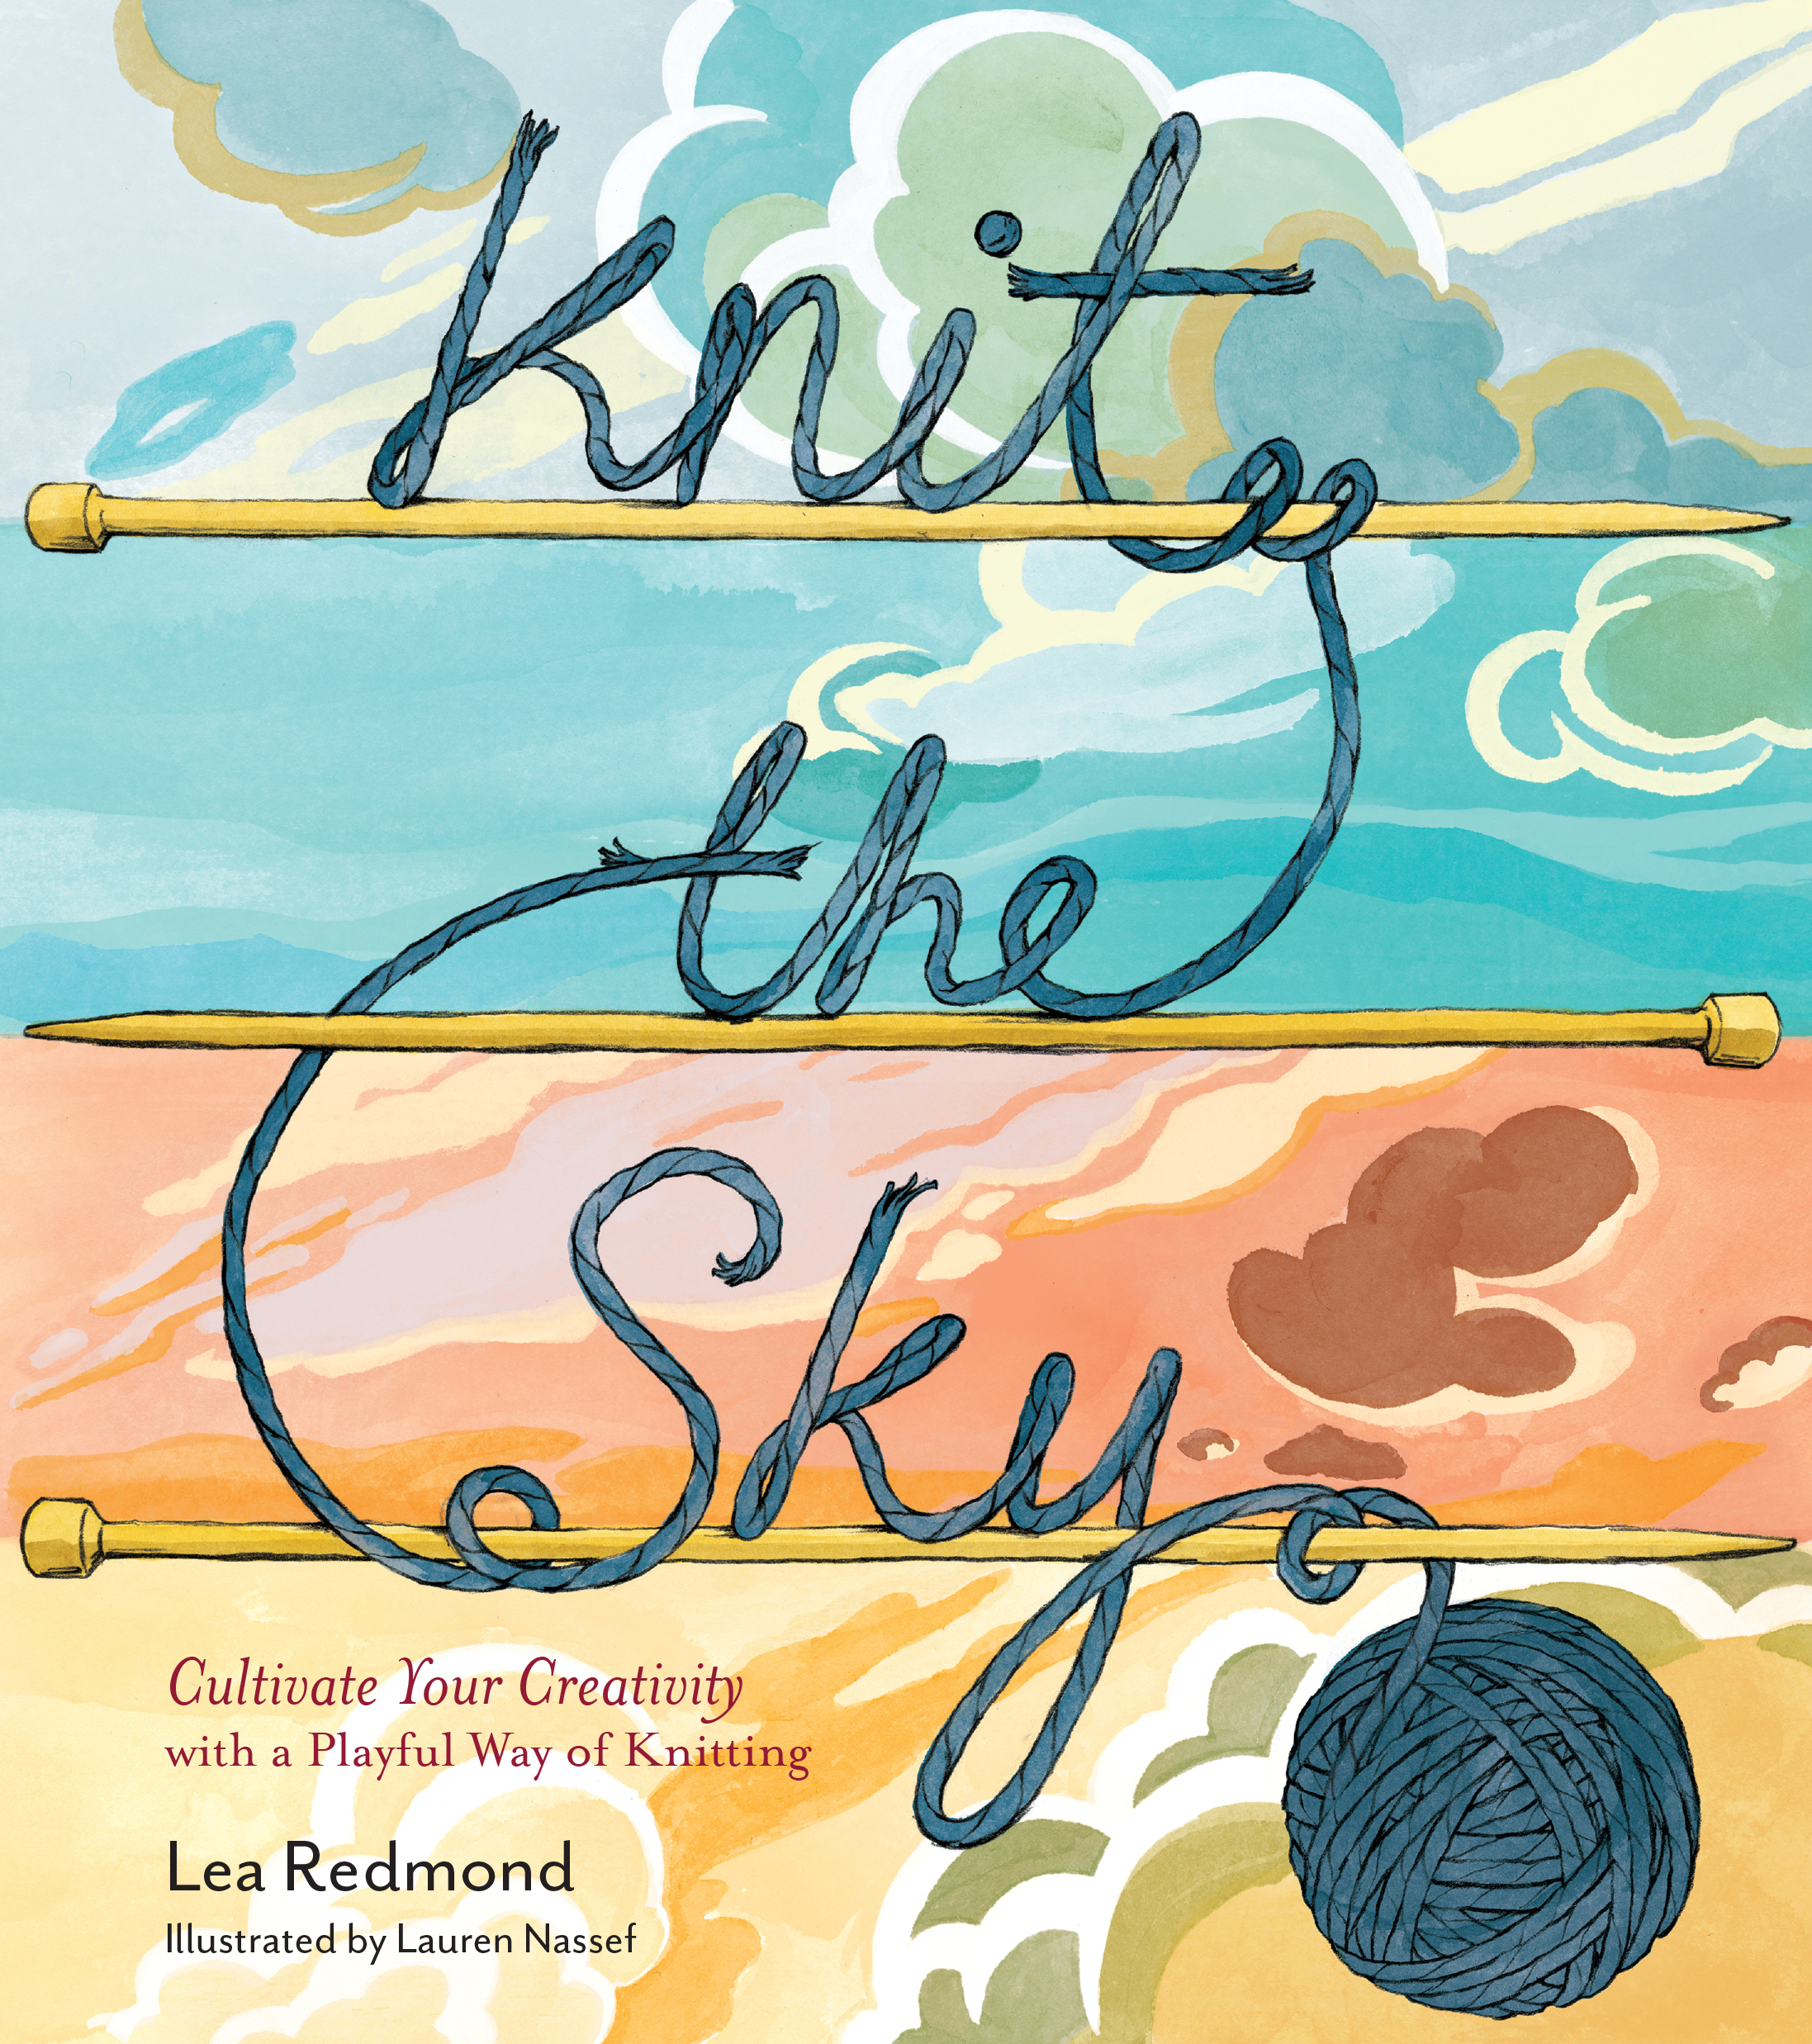 Knit the Sky Cultivate Your Creativity with a Playful Way of Knitting - Lea Redmond